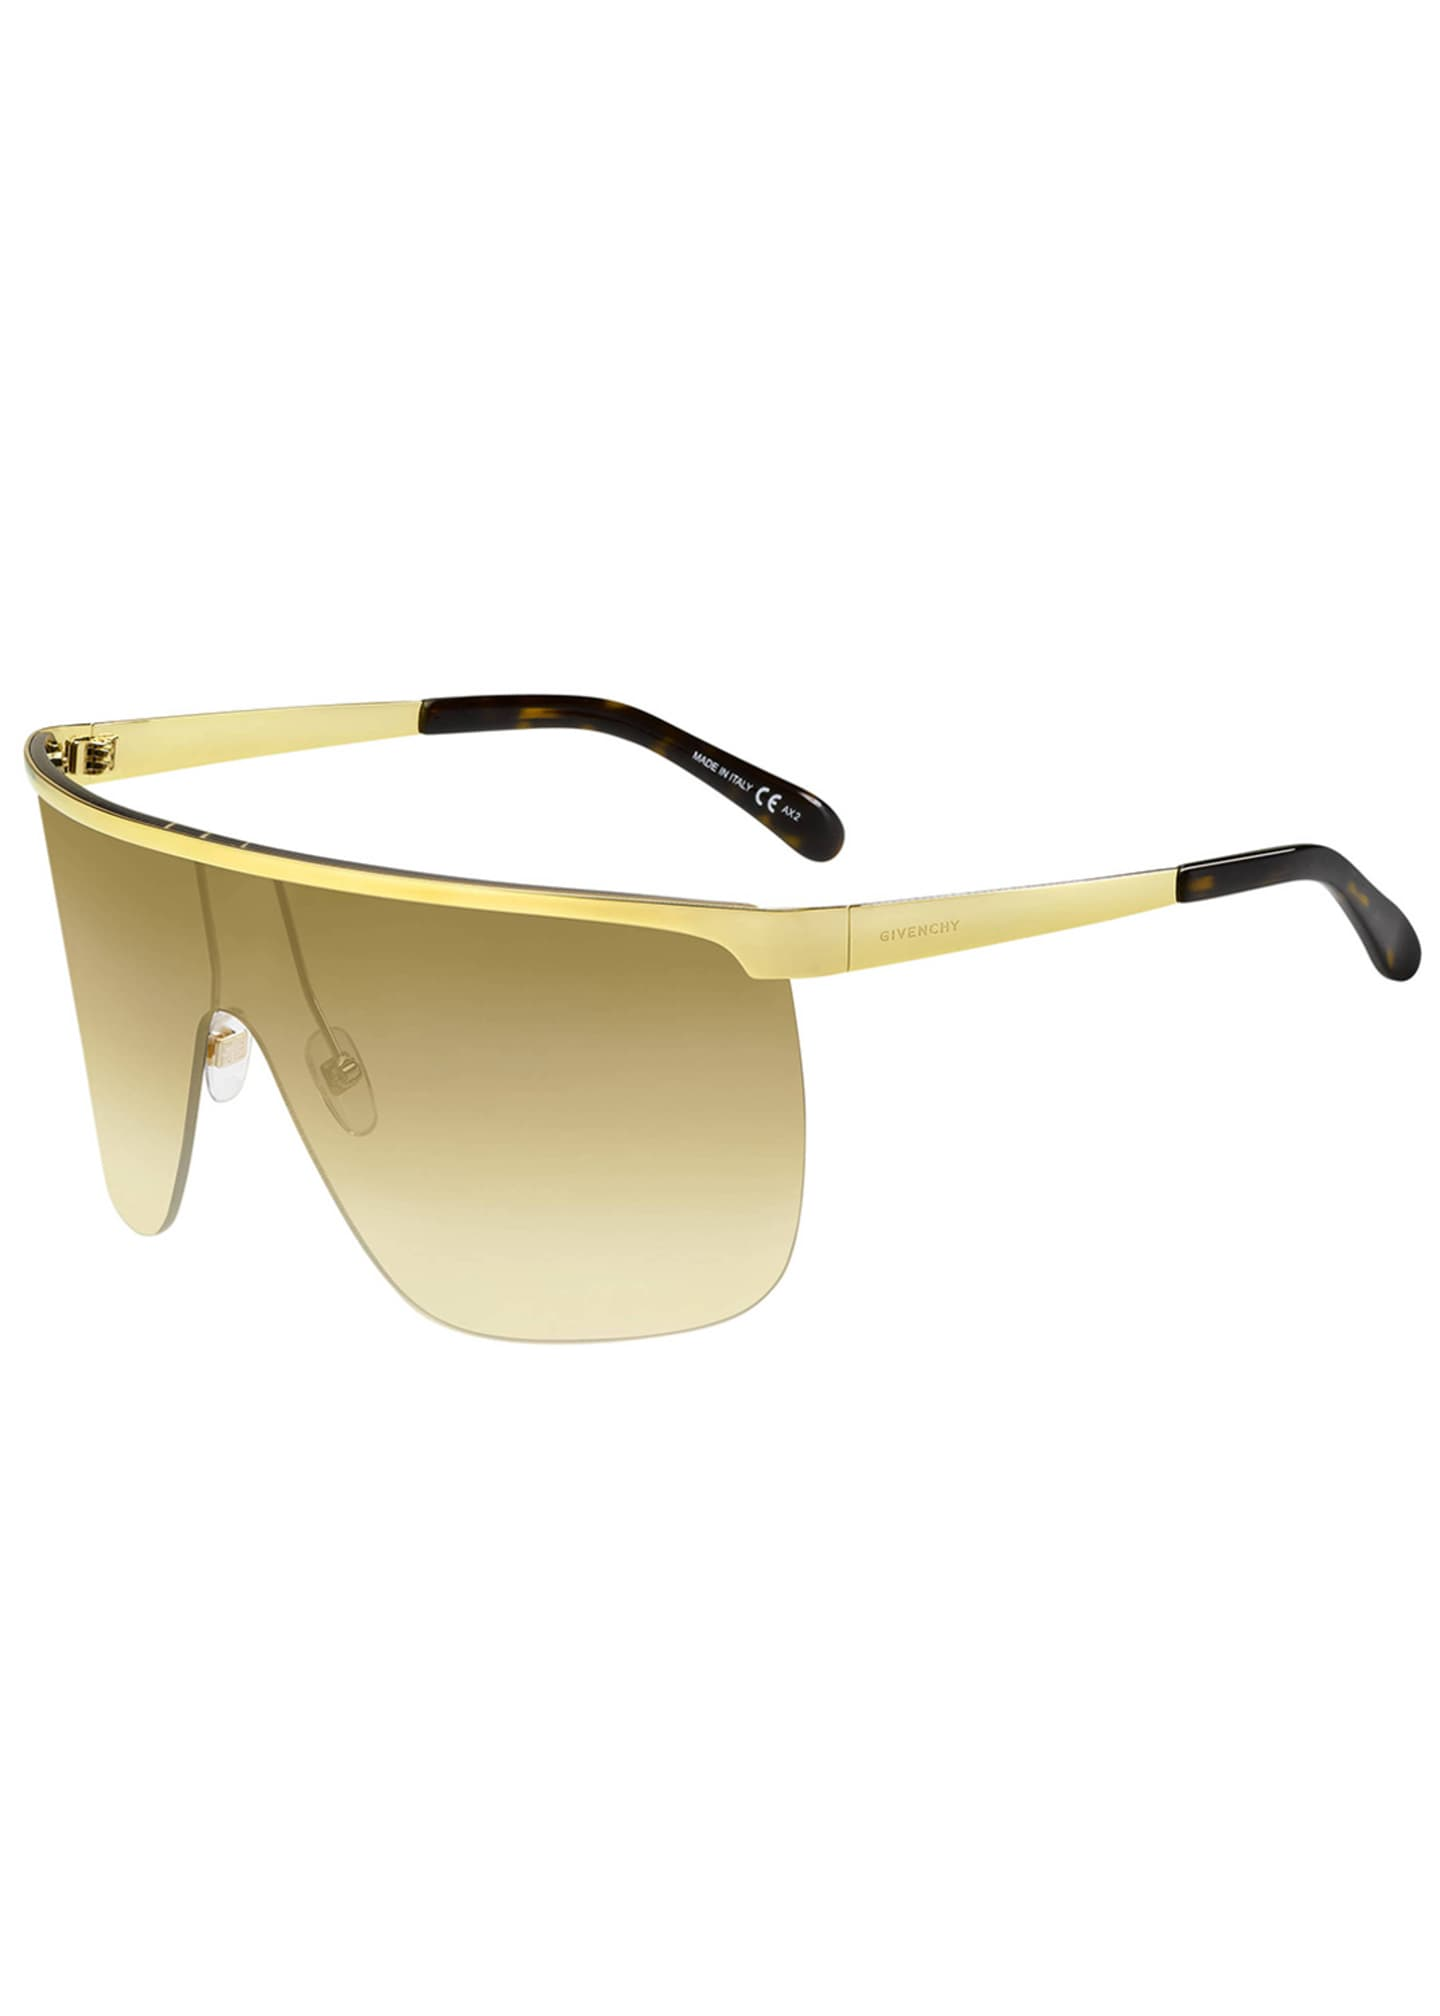 Givenchy Men's Metal Shield Sunglasses